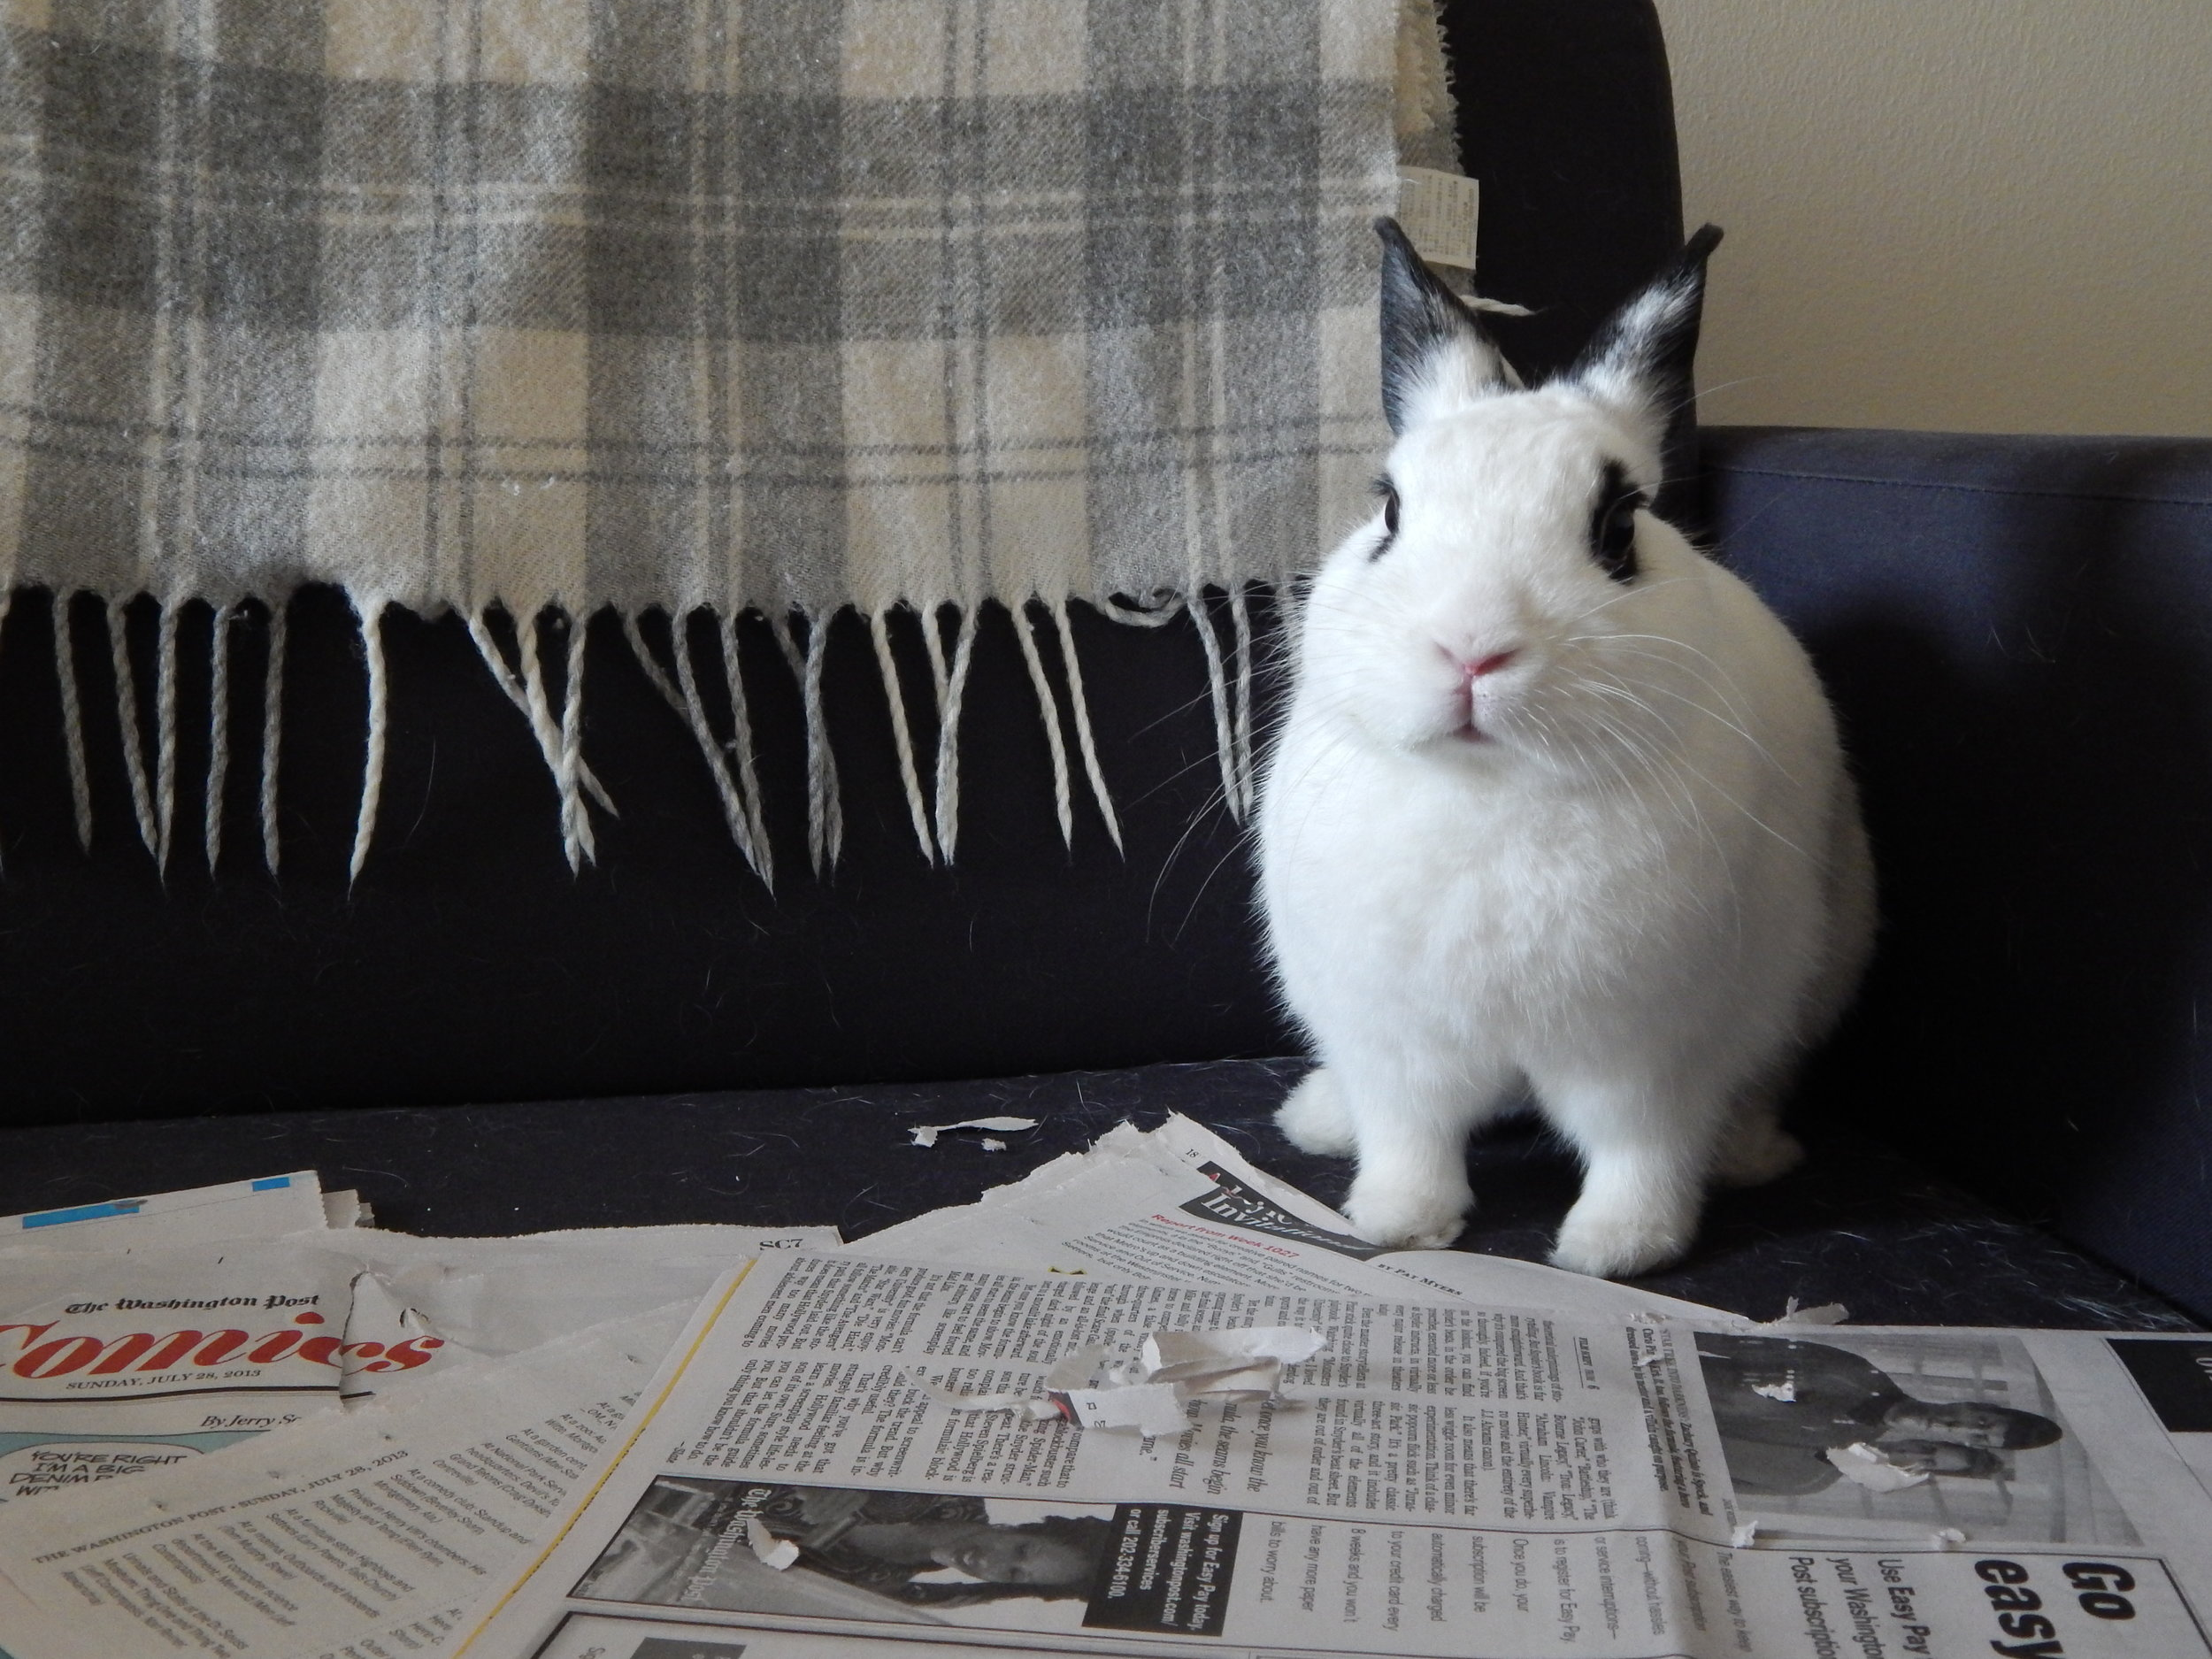 Oh, You Wanted to Read the Paper Before I Shred It? Hurry Up - The Clock Is Ticking!